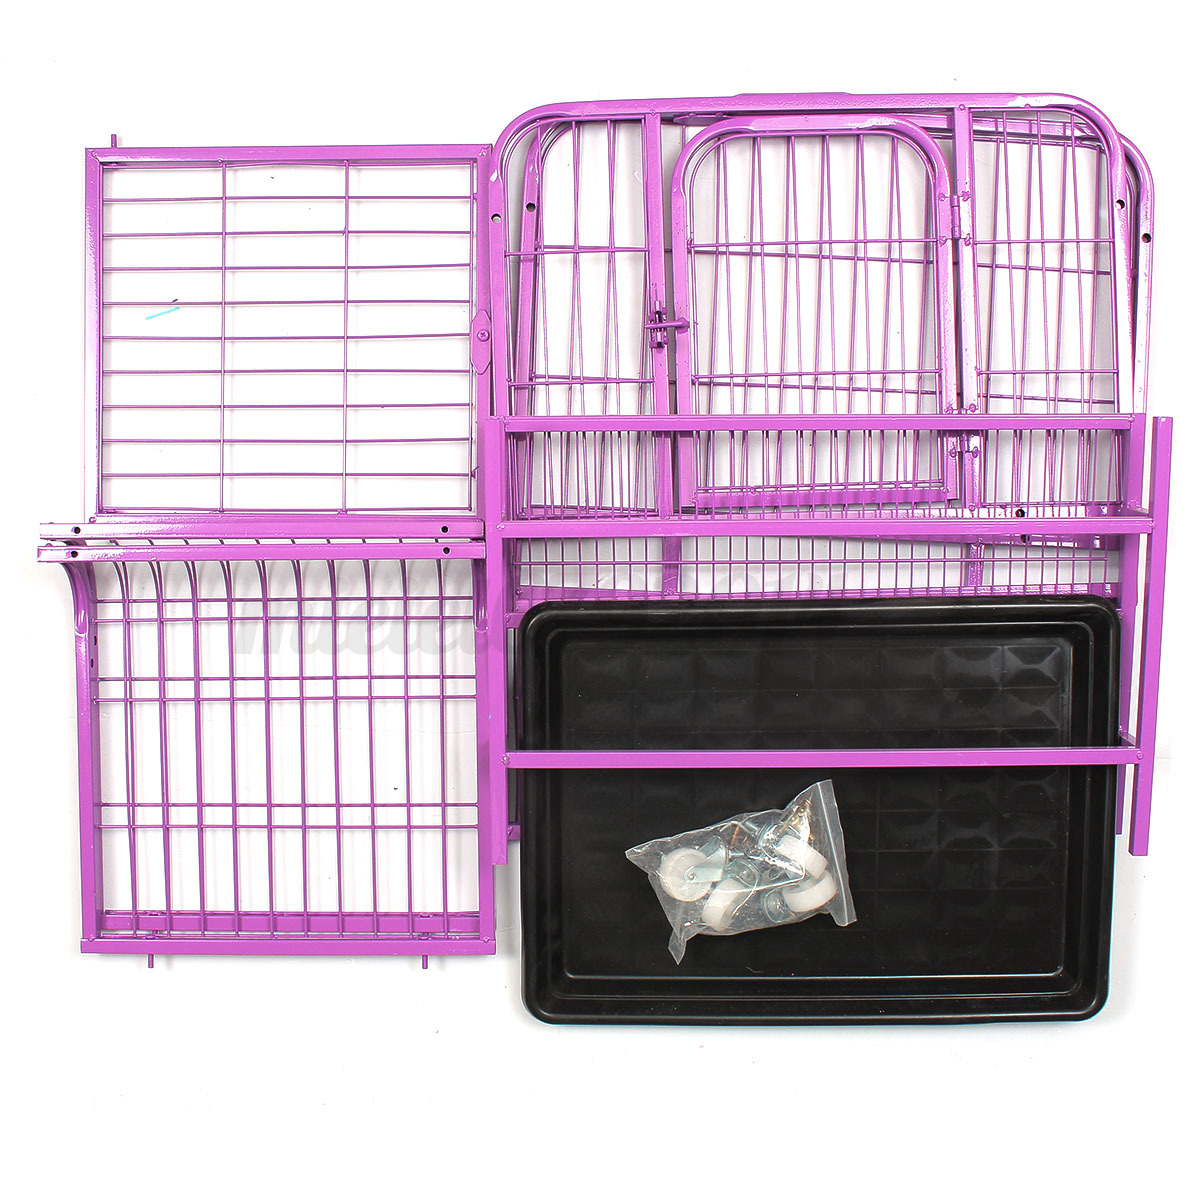 heavyduty folding strong steel pet dog puppy cage crate carrier  - detail image